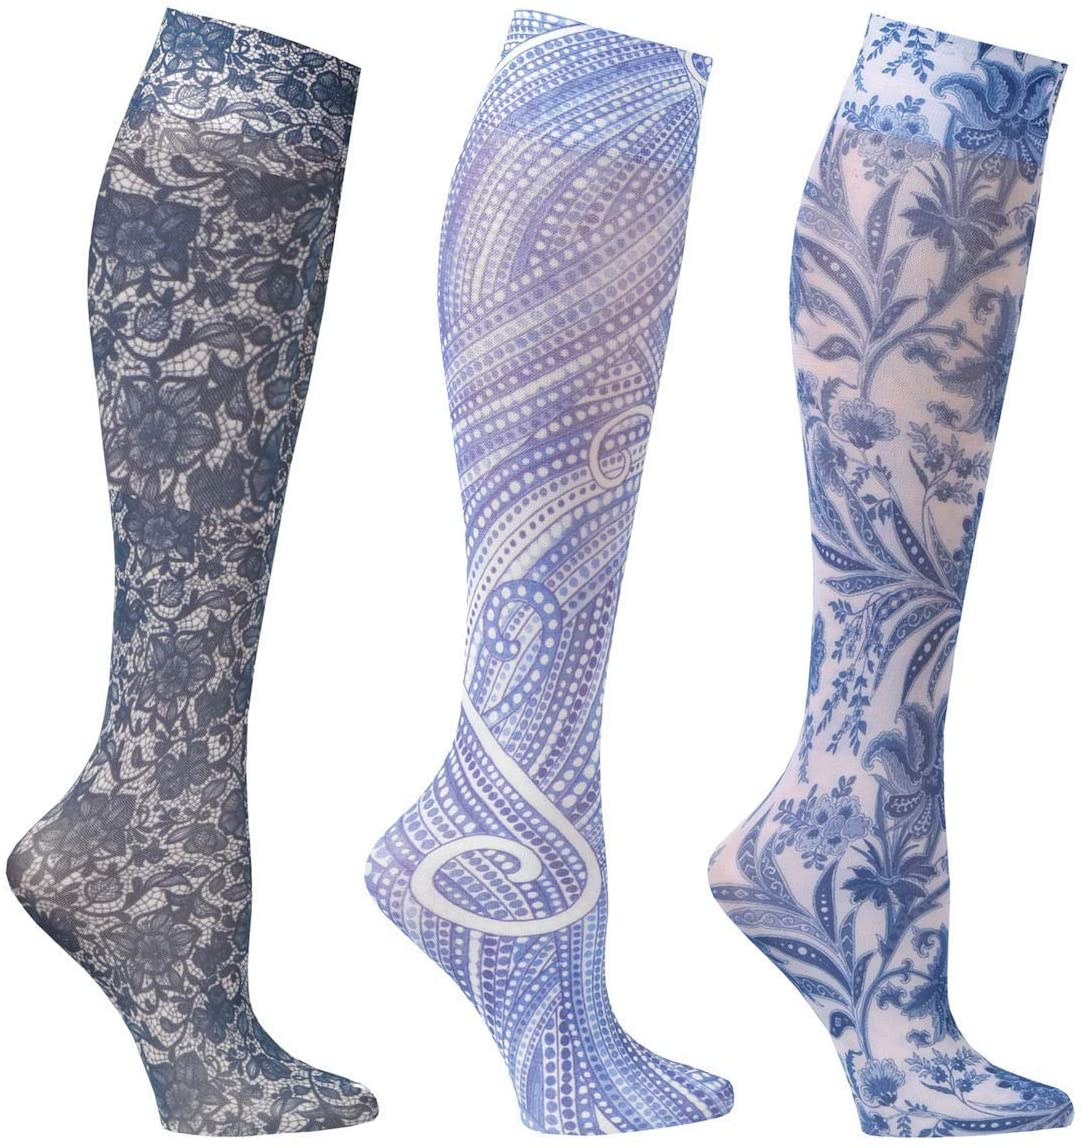 Celeste Stein Womens Knee-High Stockings - 3 Pack Wide Calf Closed Toe Mild Compression 8-15 mmHg - Blue Medley